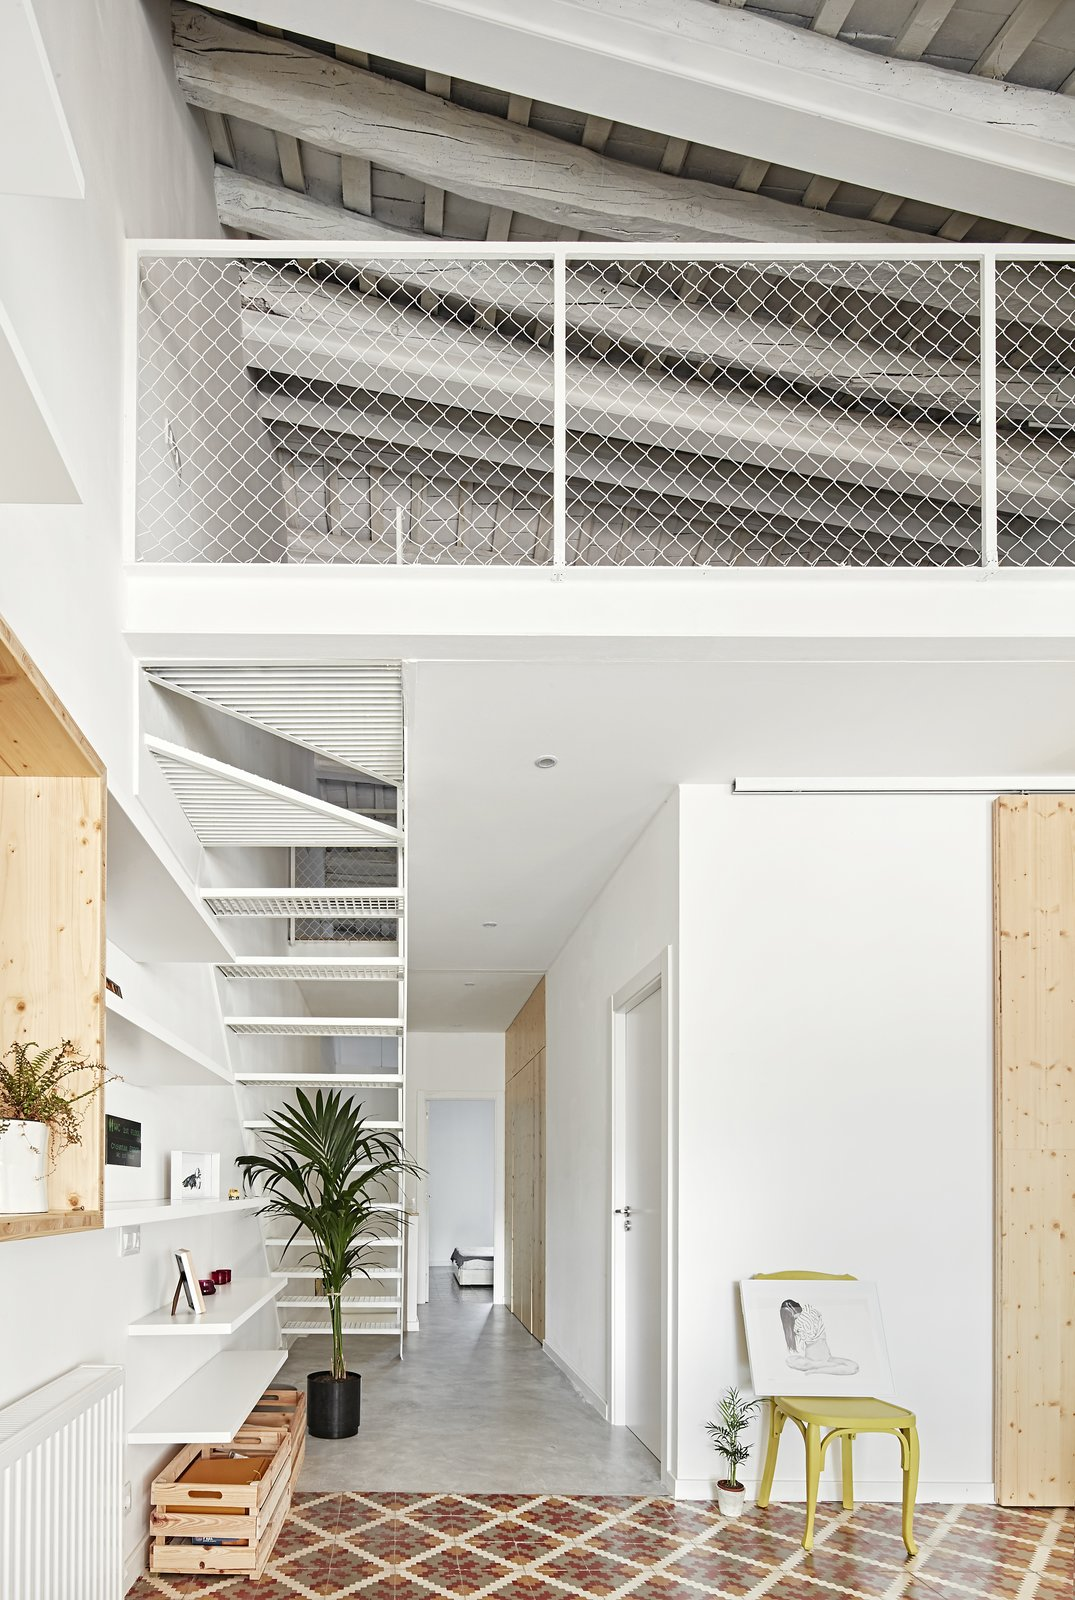 Staircase, Metal Tread, and Metal Railing  Photo 3 of 11 in Can This Renovated, Loft-Like Home in Spain Be Any Dreamier?